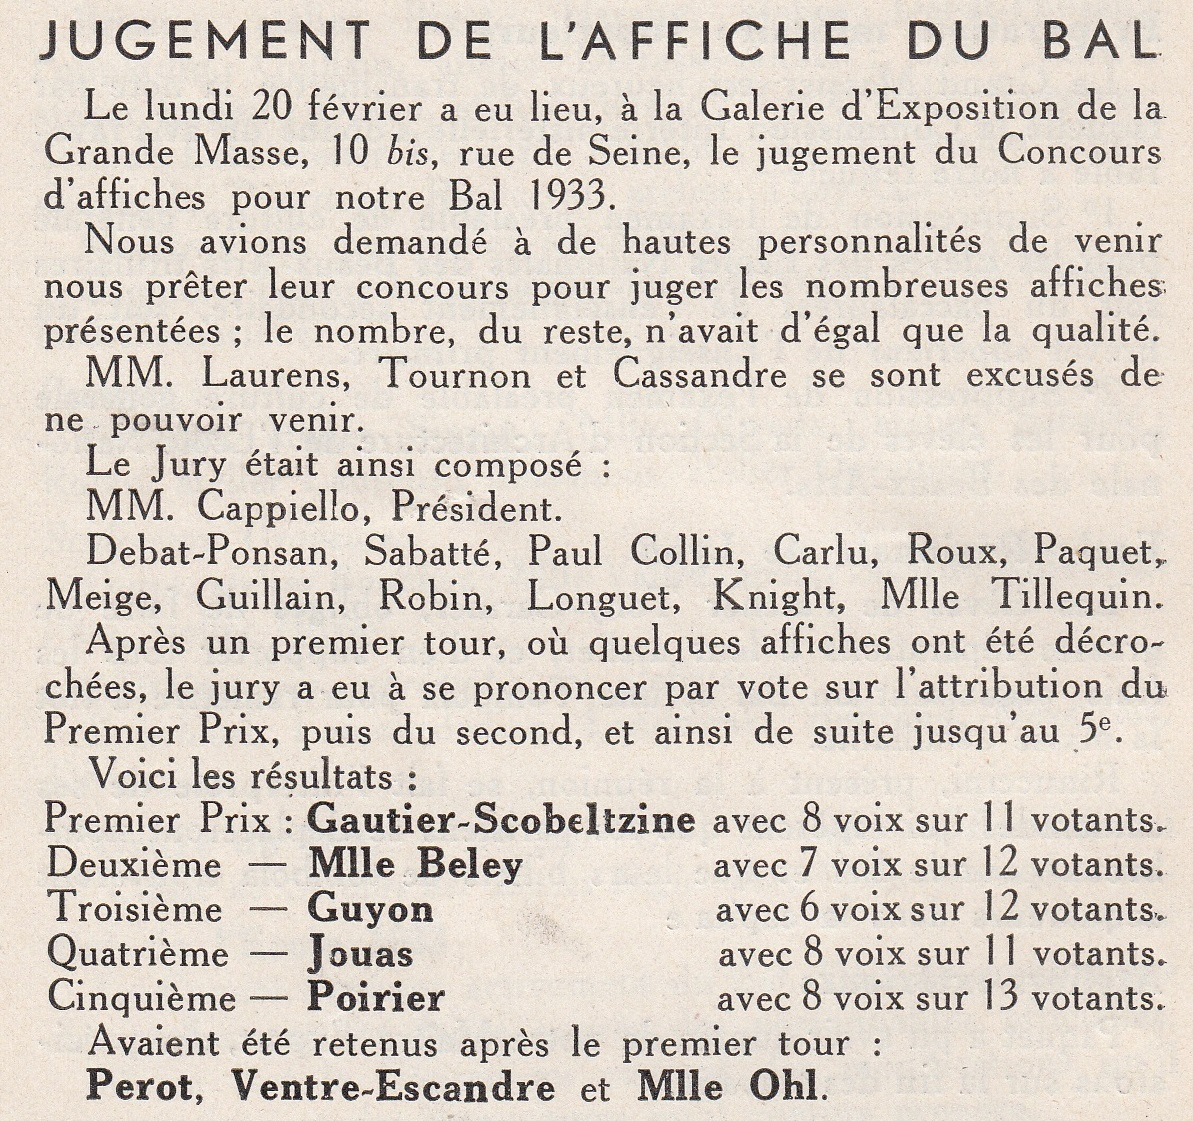 193303_Bulletin-GMBA_Jugement-concours-affiches.jpg